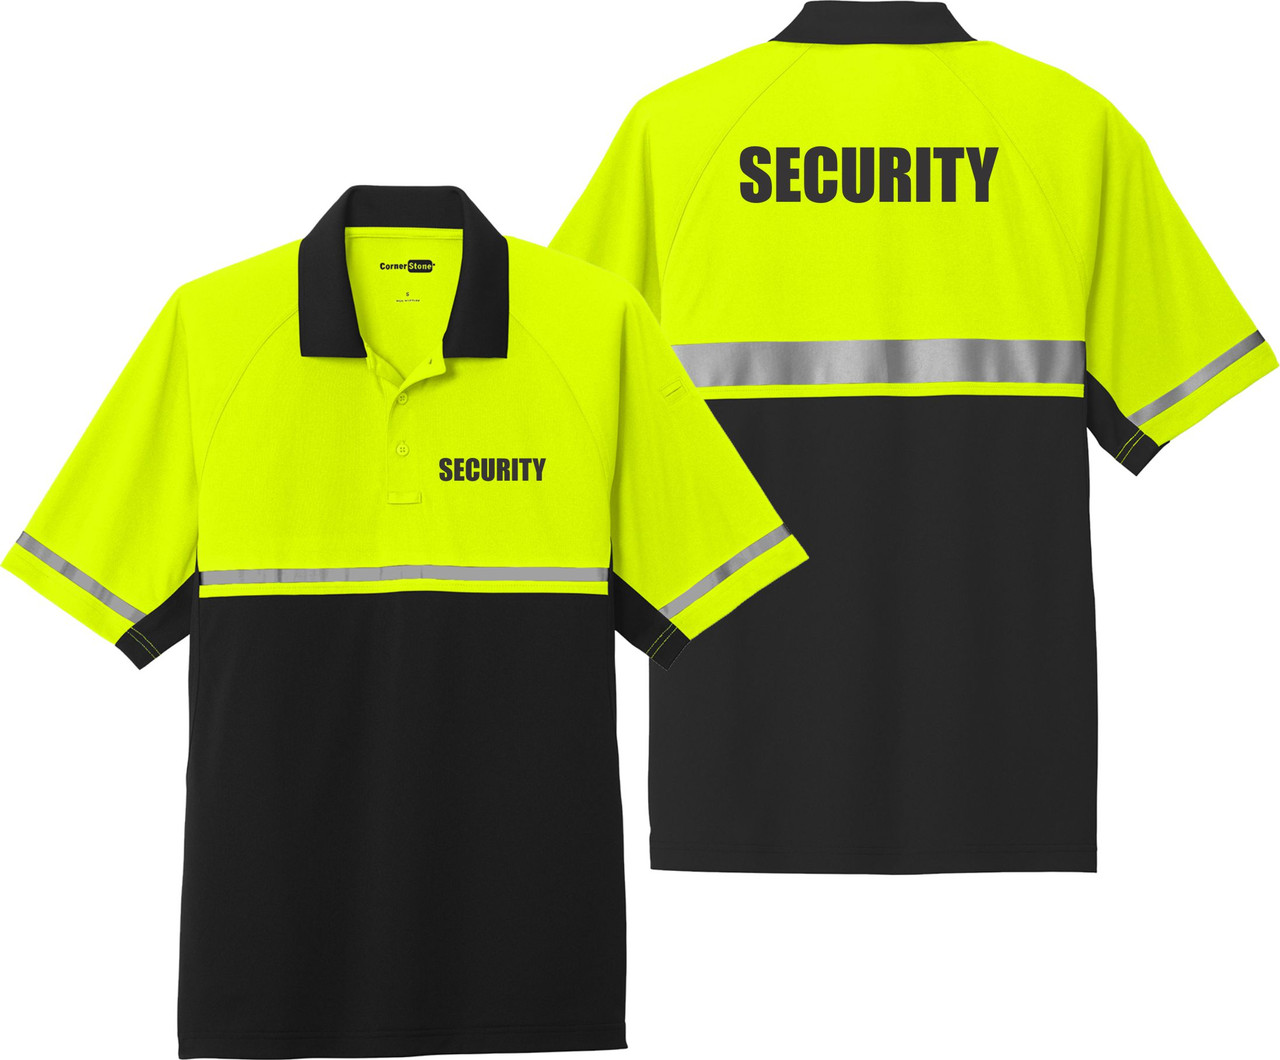 Security Polo - Two Tone Safety Yellow  Black with Enhanced Visibility